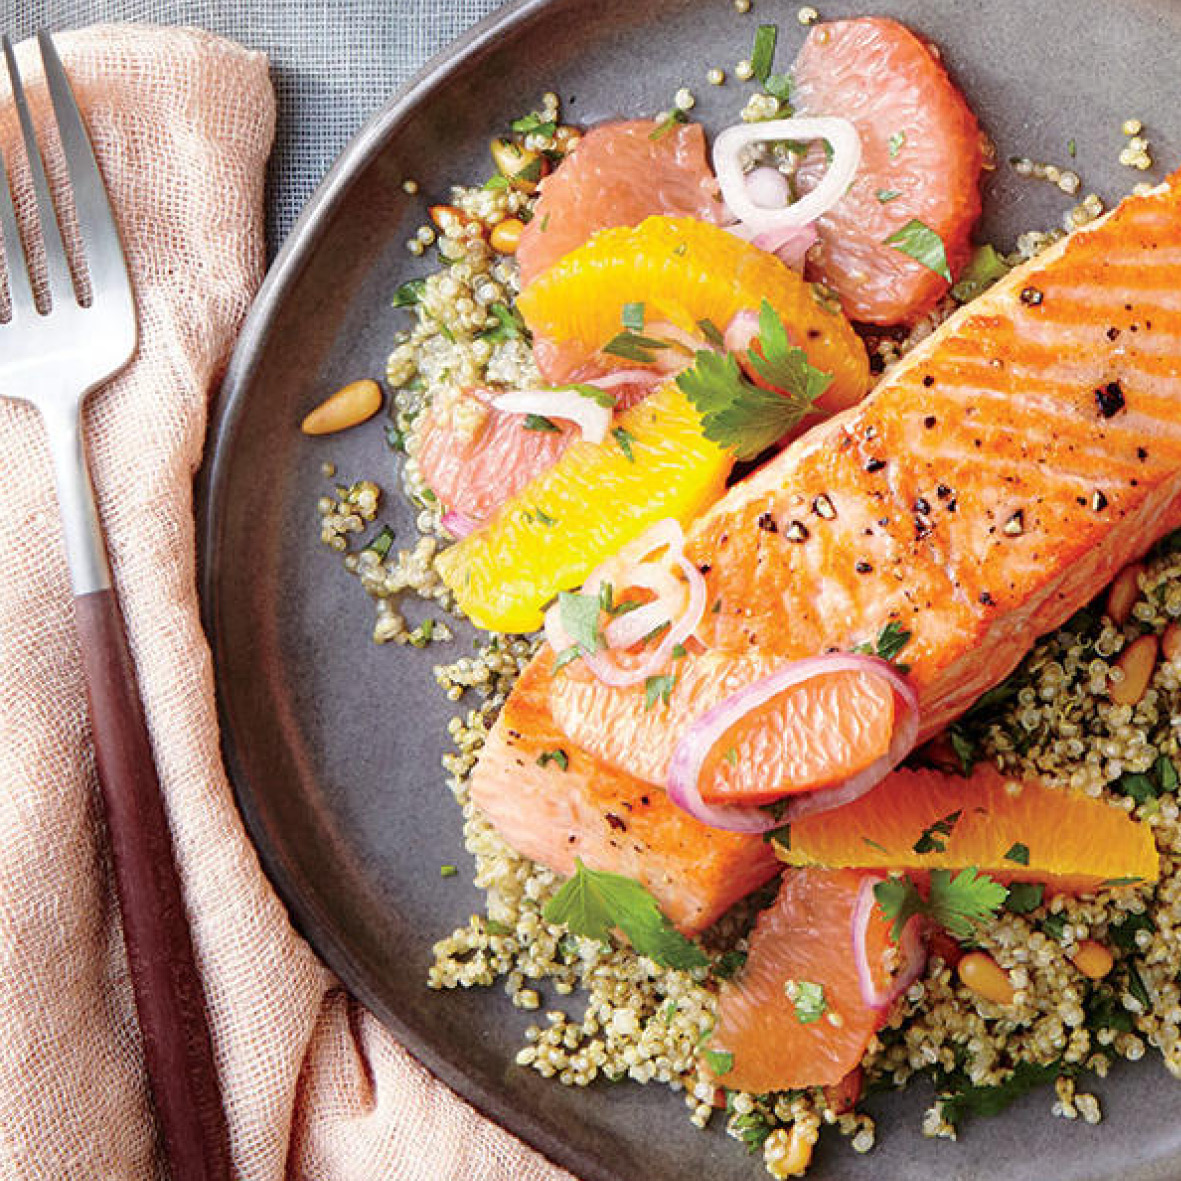 Sauteed salmon with citrus salsa.jpg